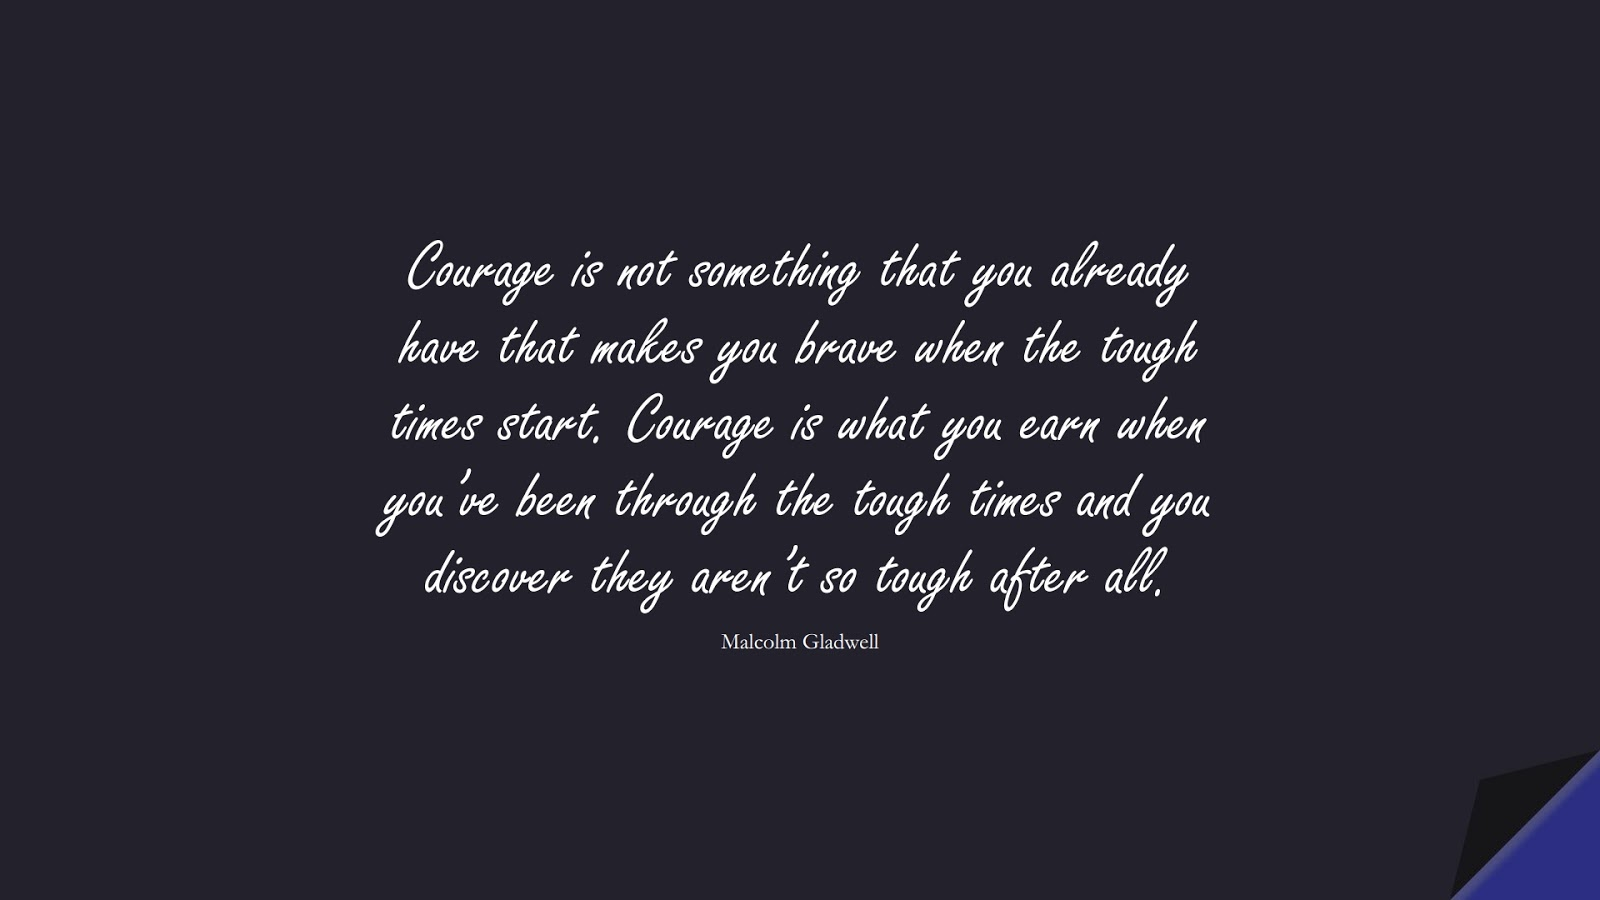 Courage is not something that you already have that makes you brave when the tough times start. Courage is what you earn when you've been through the tough times and you discover they aren't so tough after all. (Malcolm Gladwell);  #CourageQuotes